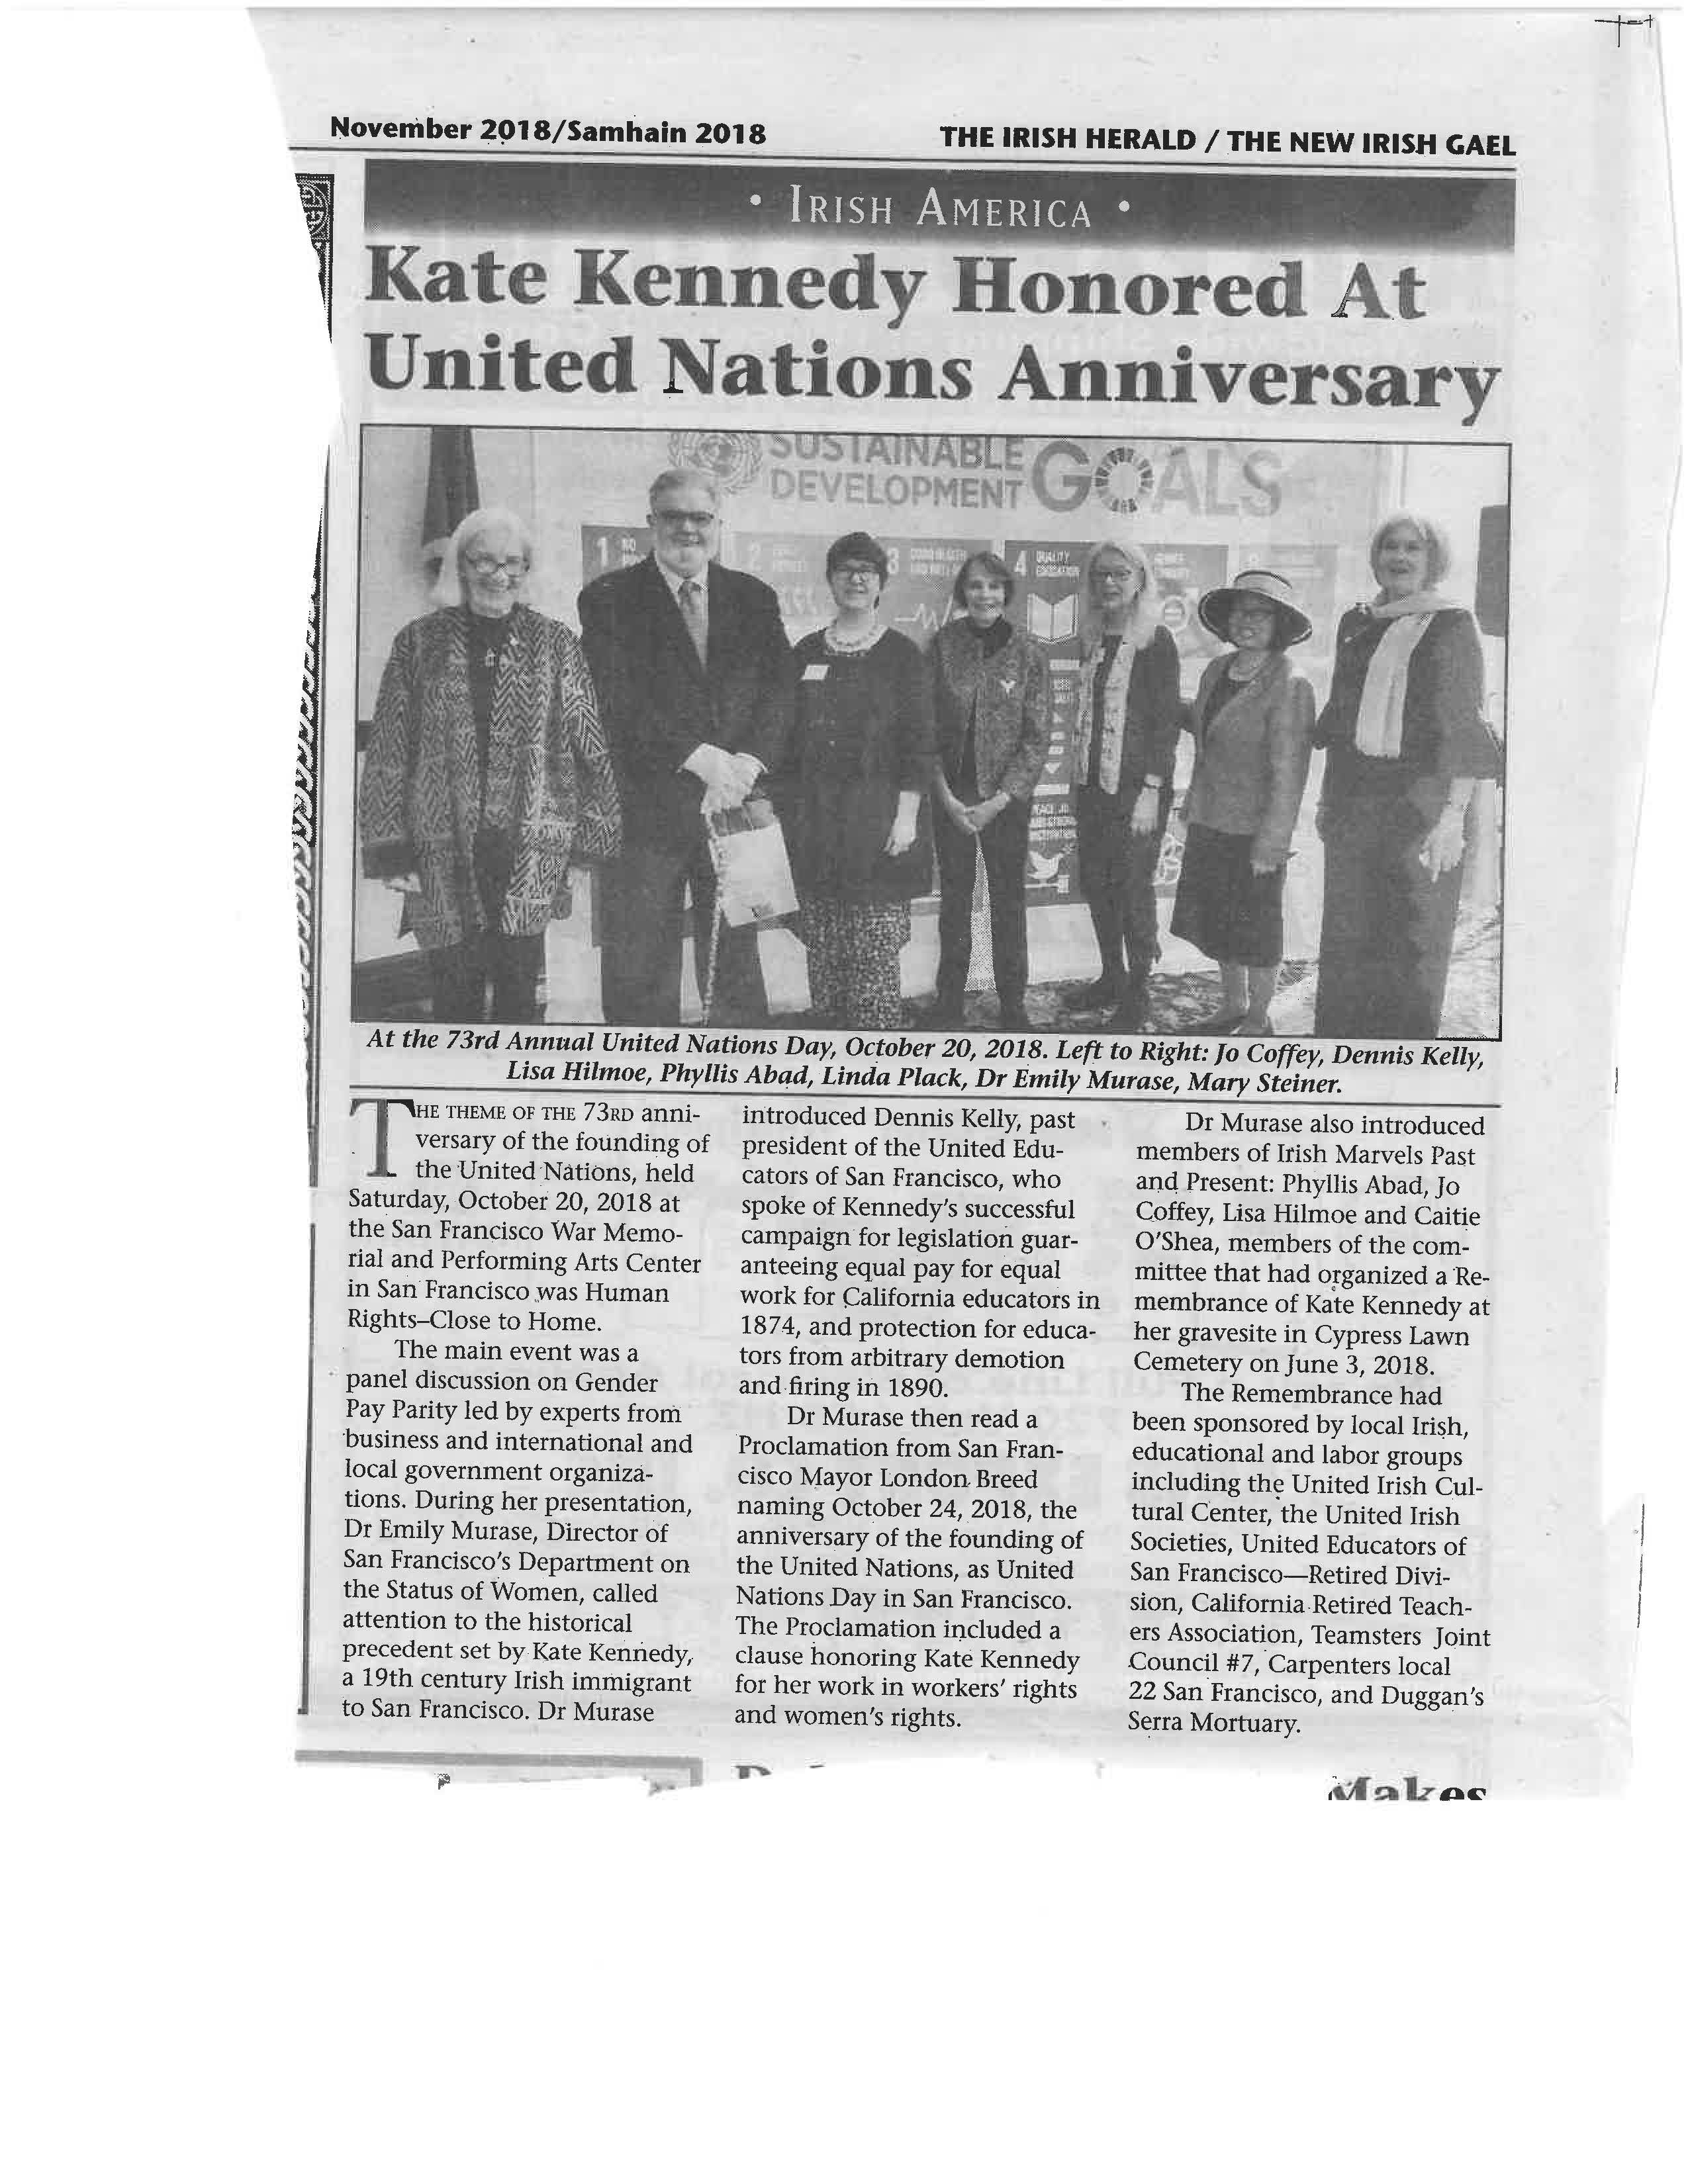 News Article regarding Kate Kennedy honored by UN in November 2019